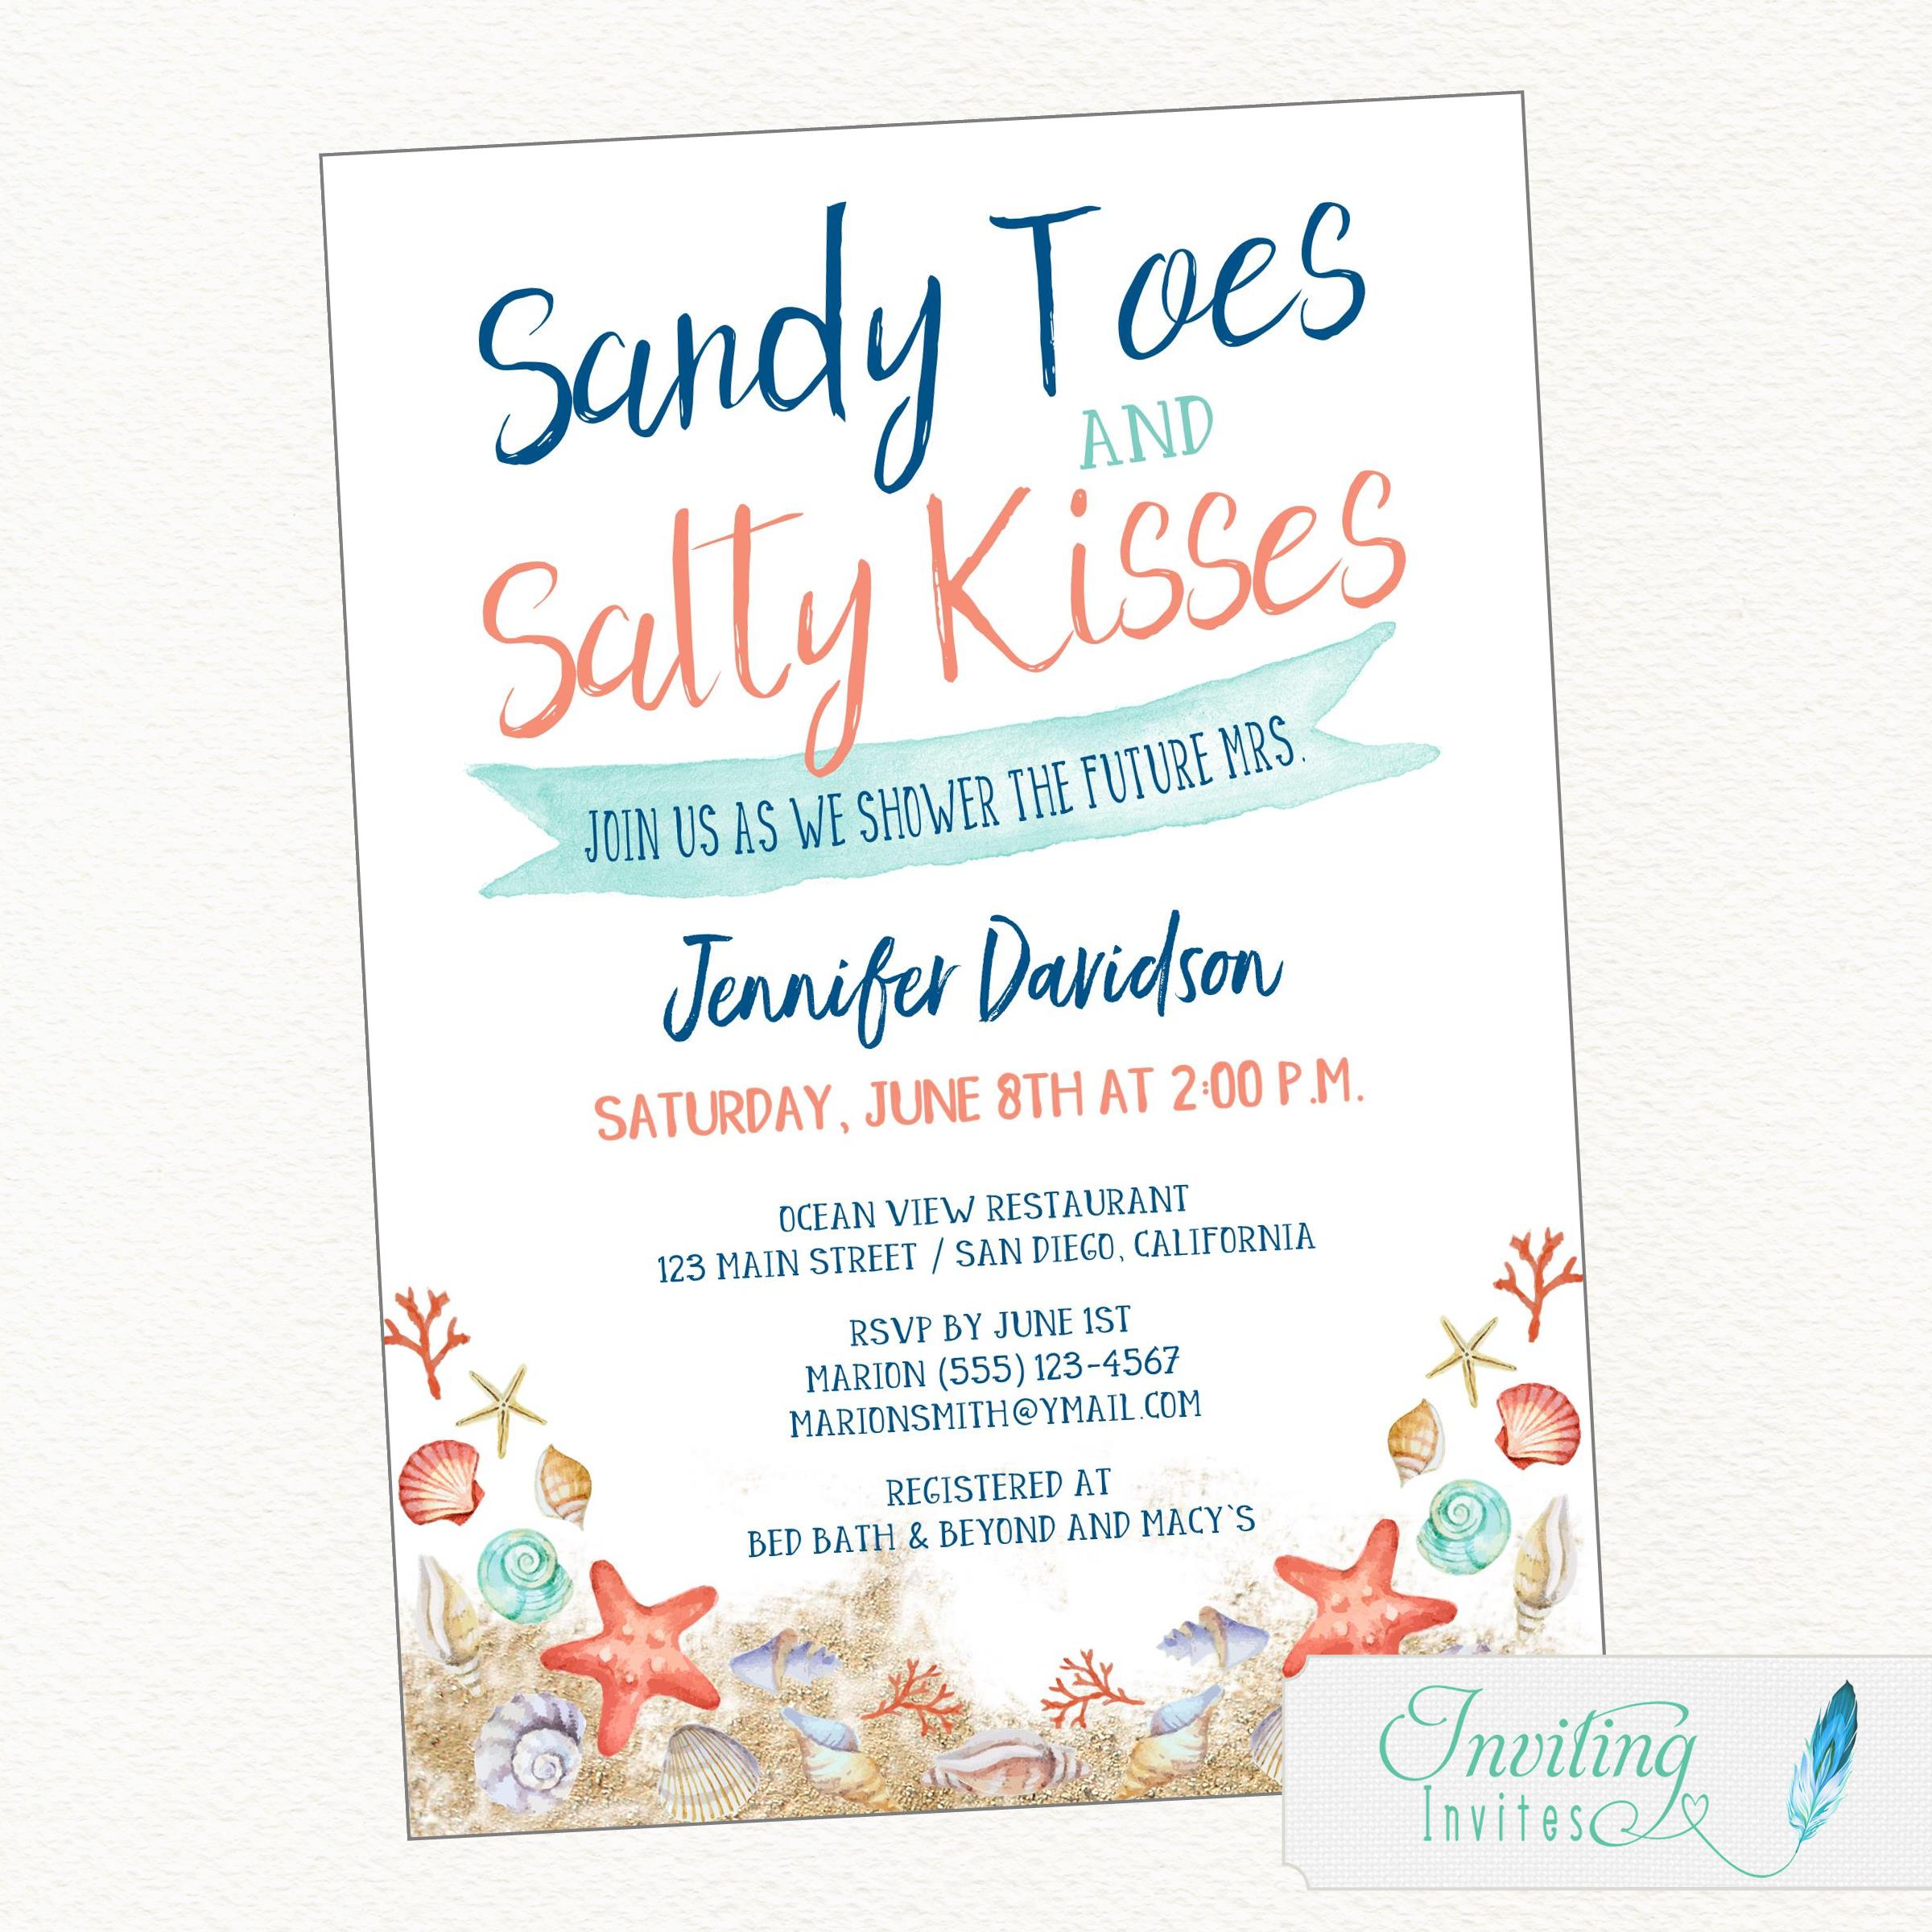 Beach bridal shower sandy toes salty kisses sandy toes salty kisses its time to shower the future mrs filmwisefo